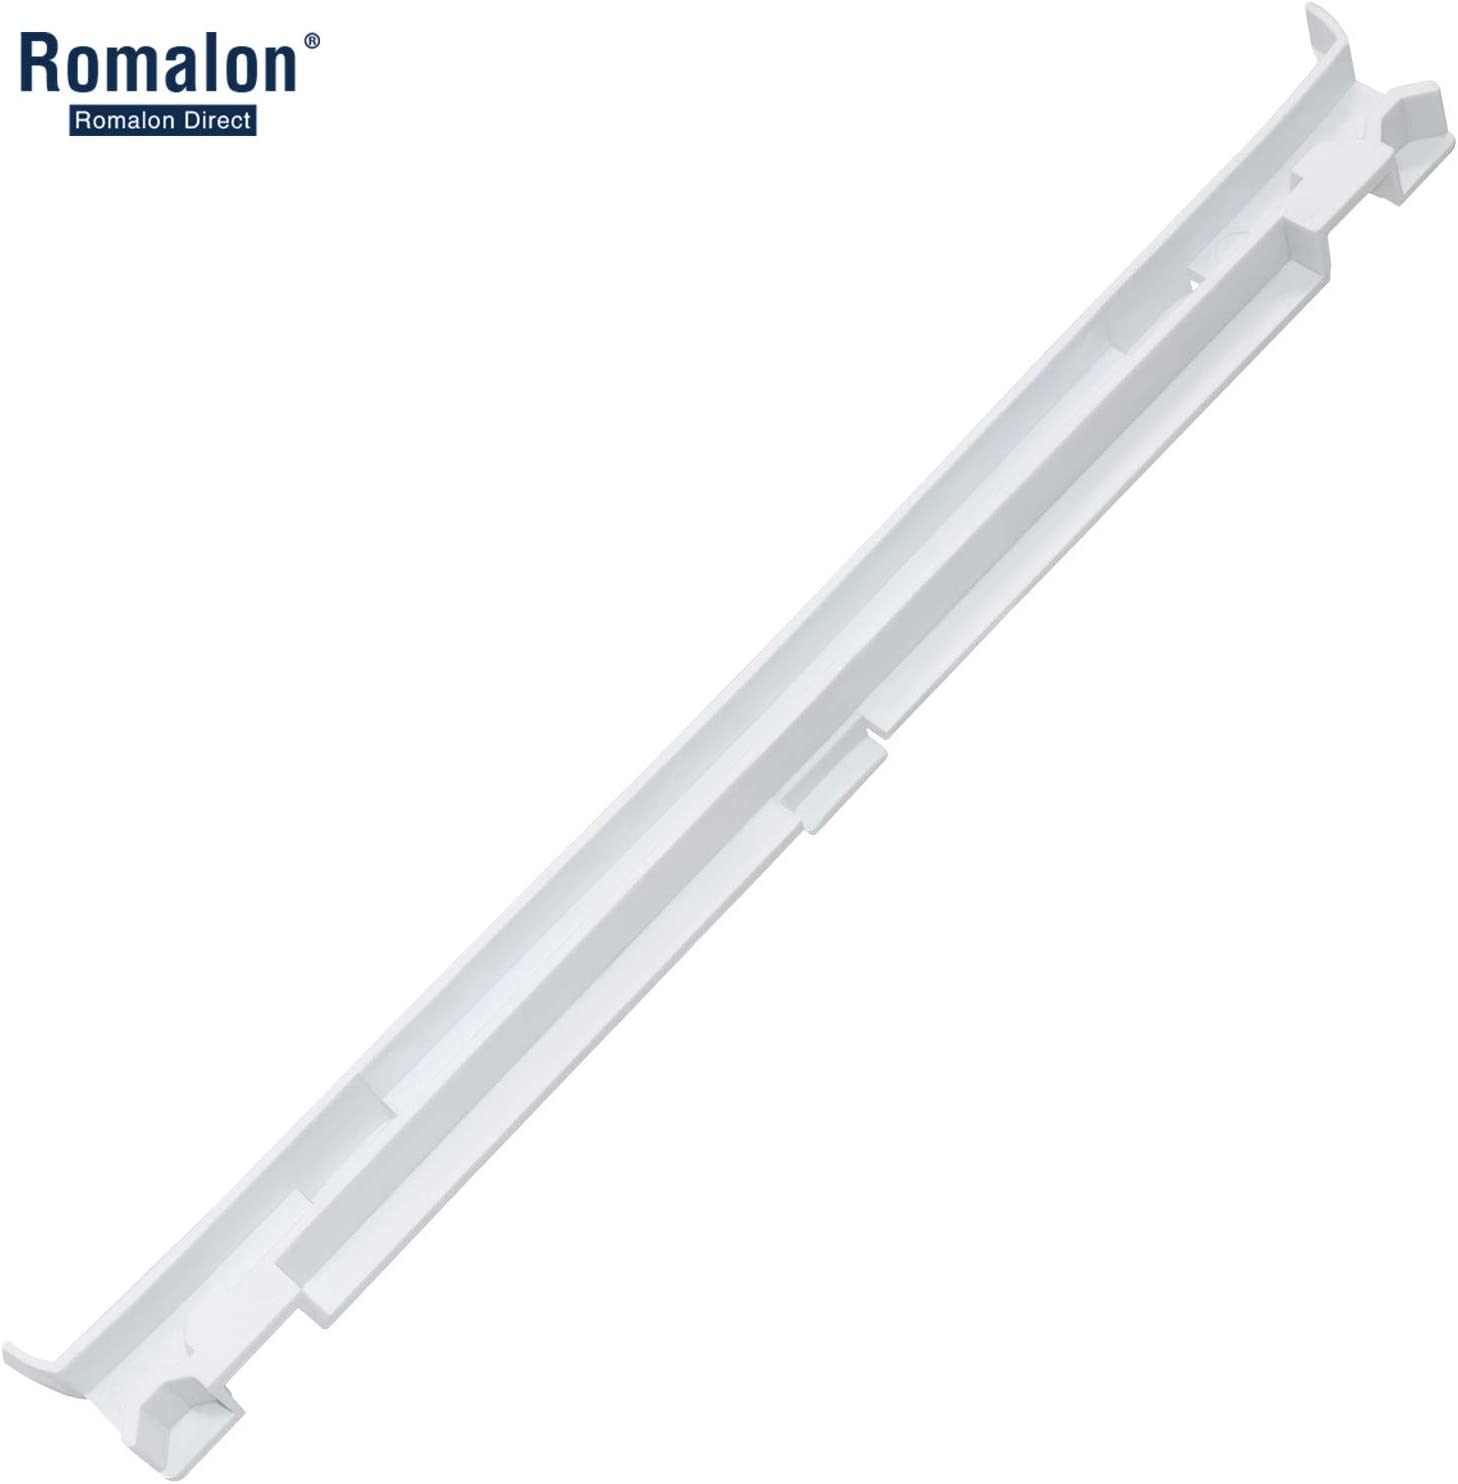 Romalon WP2223320 Refrigerator Drawer Slide Rail for Whirlpool 2223320 Pan Slide Replacement Part exactly fit for GD5R, GD5S, GD5Y, Kenmore 10655216400